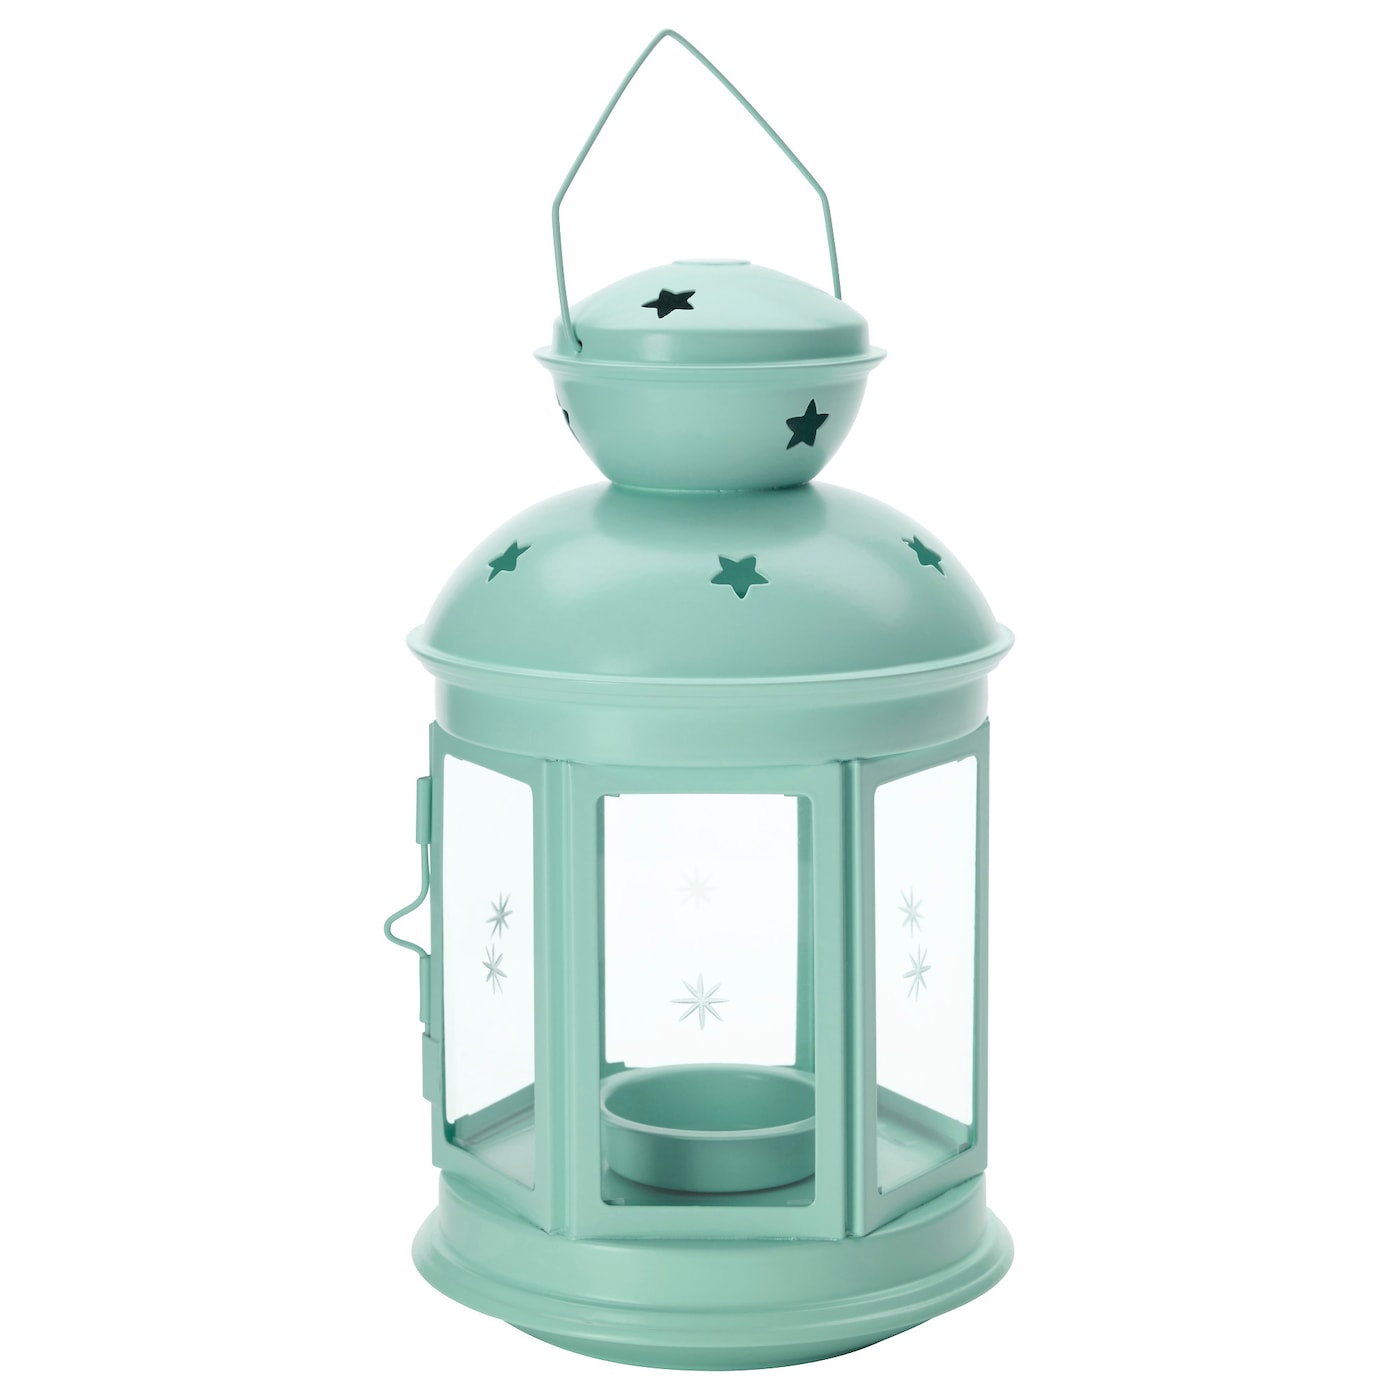 Porch Light Green: Home Decoration & Home Accessories